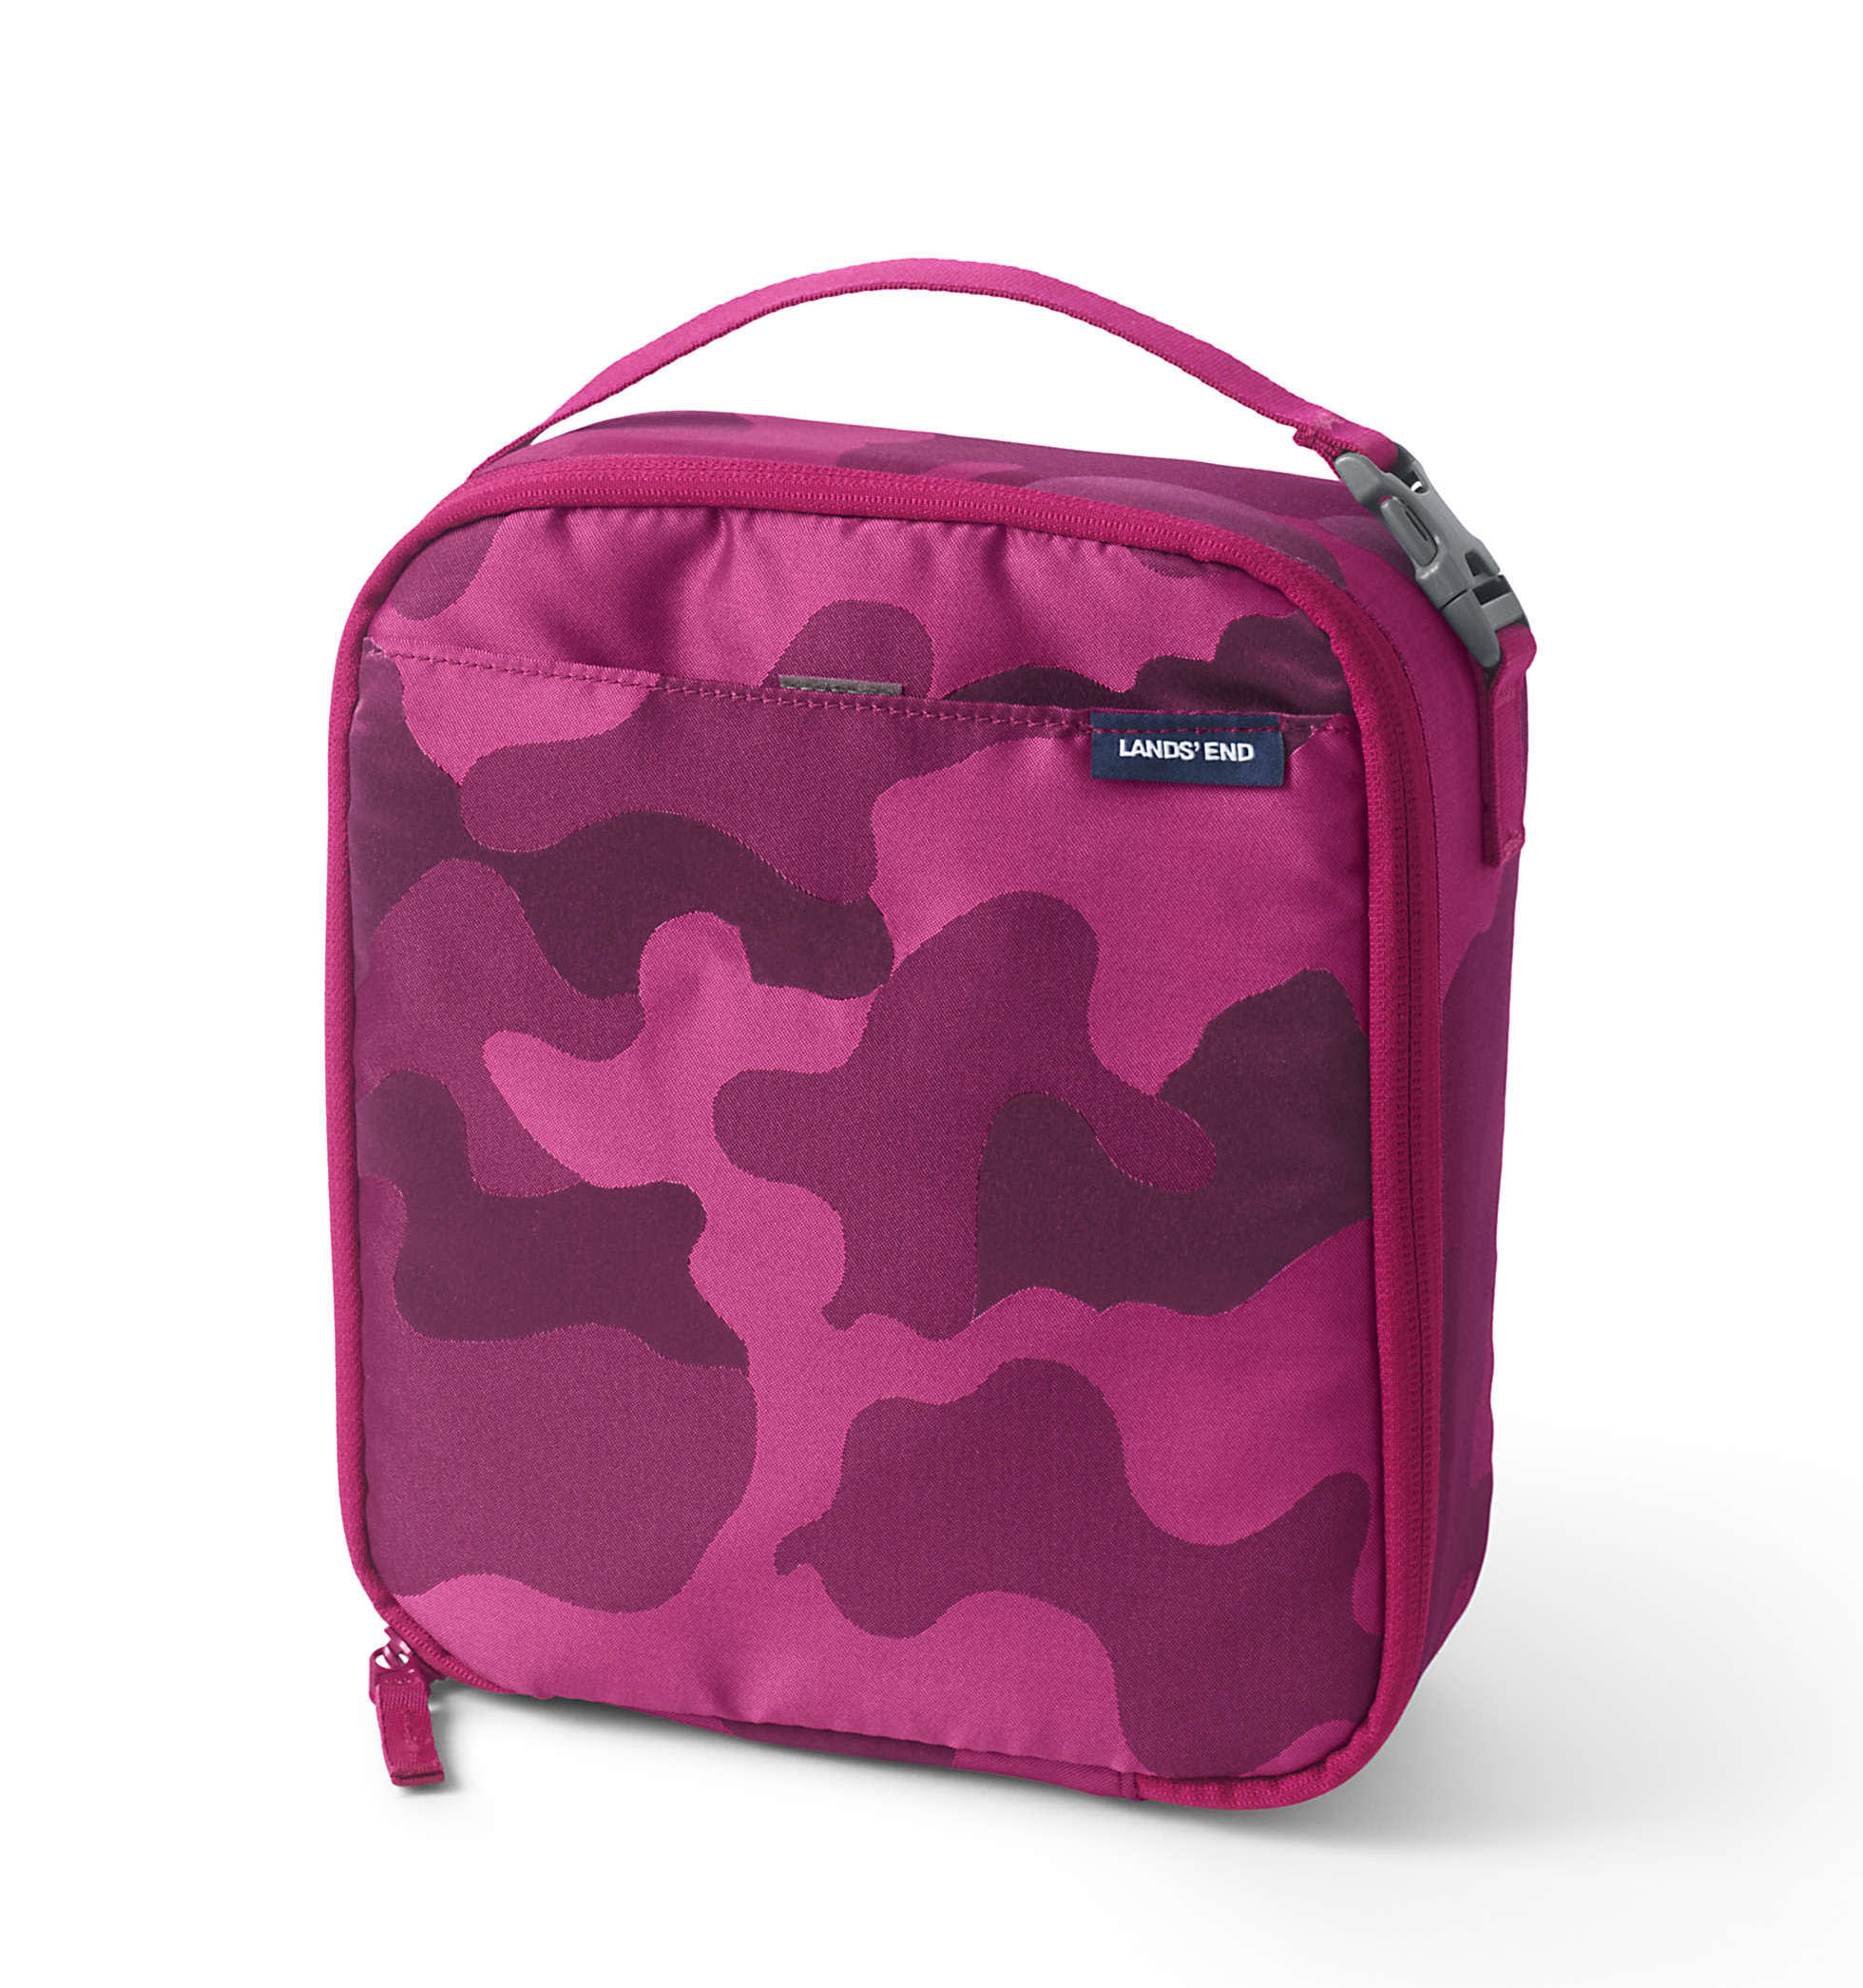 Lands' End Kids' Insulated Soft Sided Lunch Box